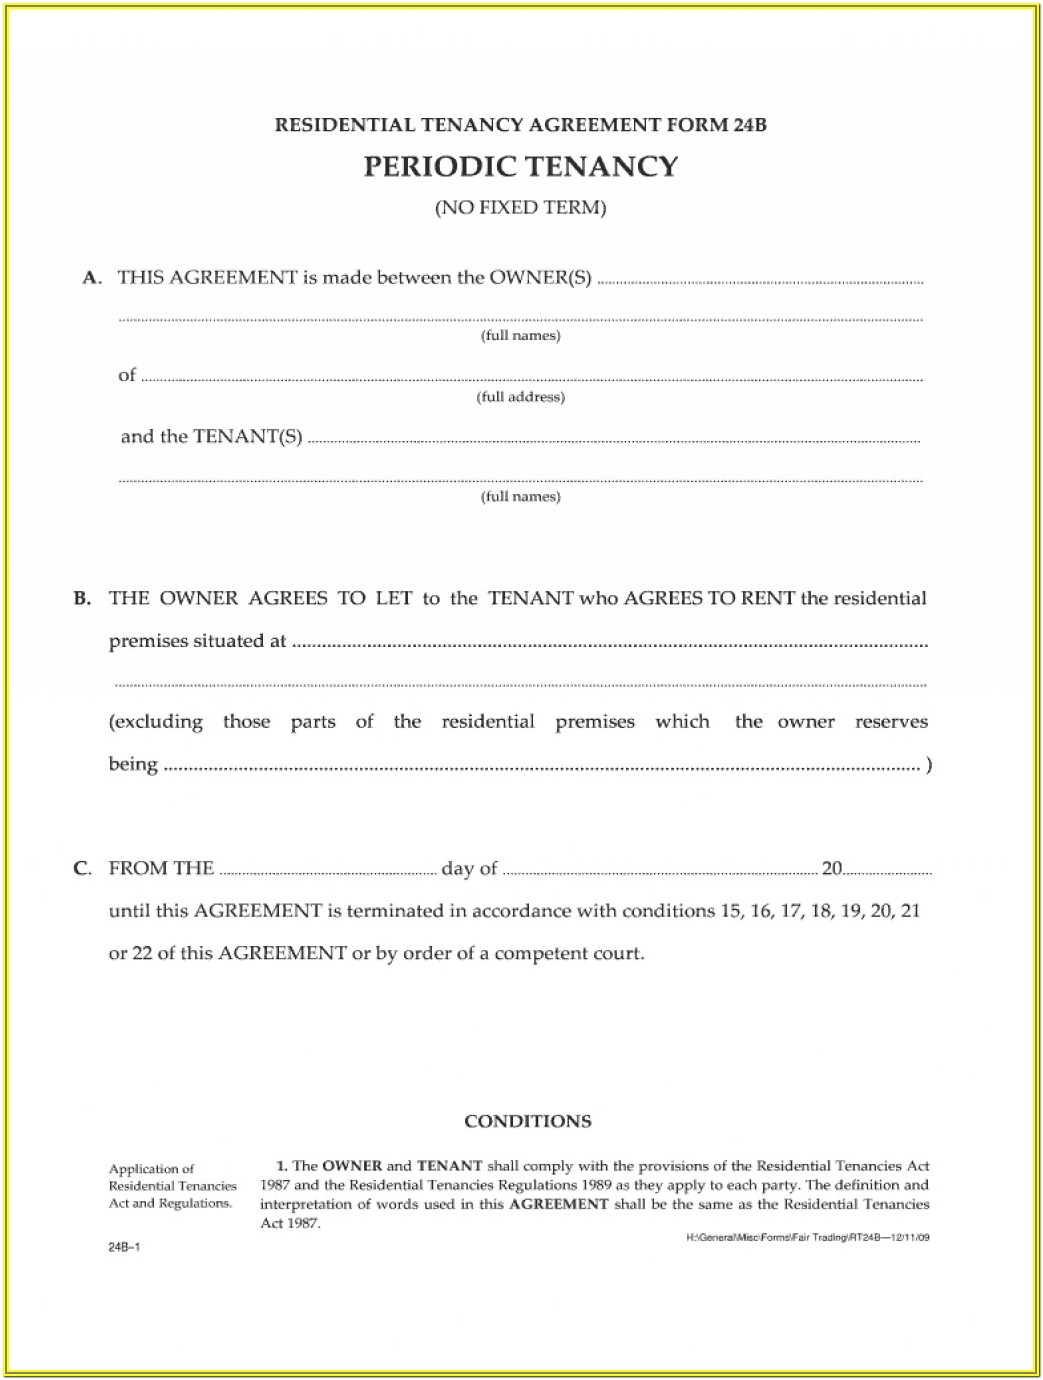 Residential Tenancy Agreement Form 24b